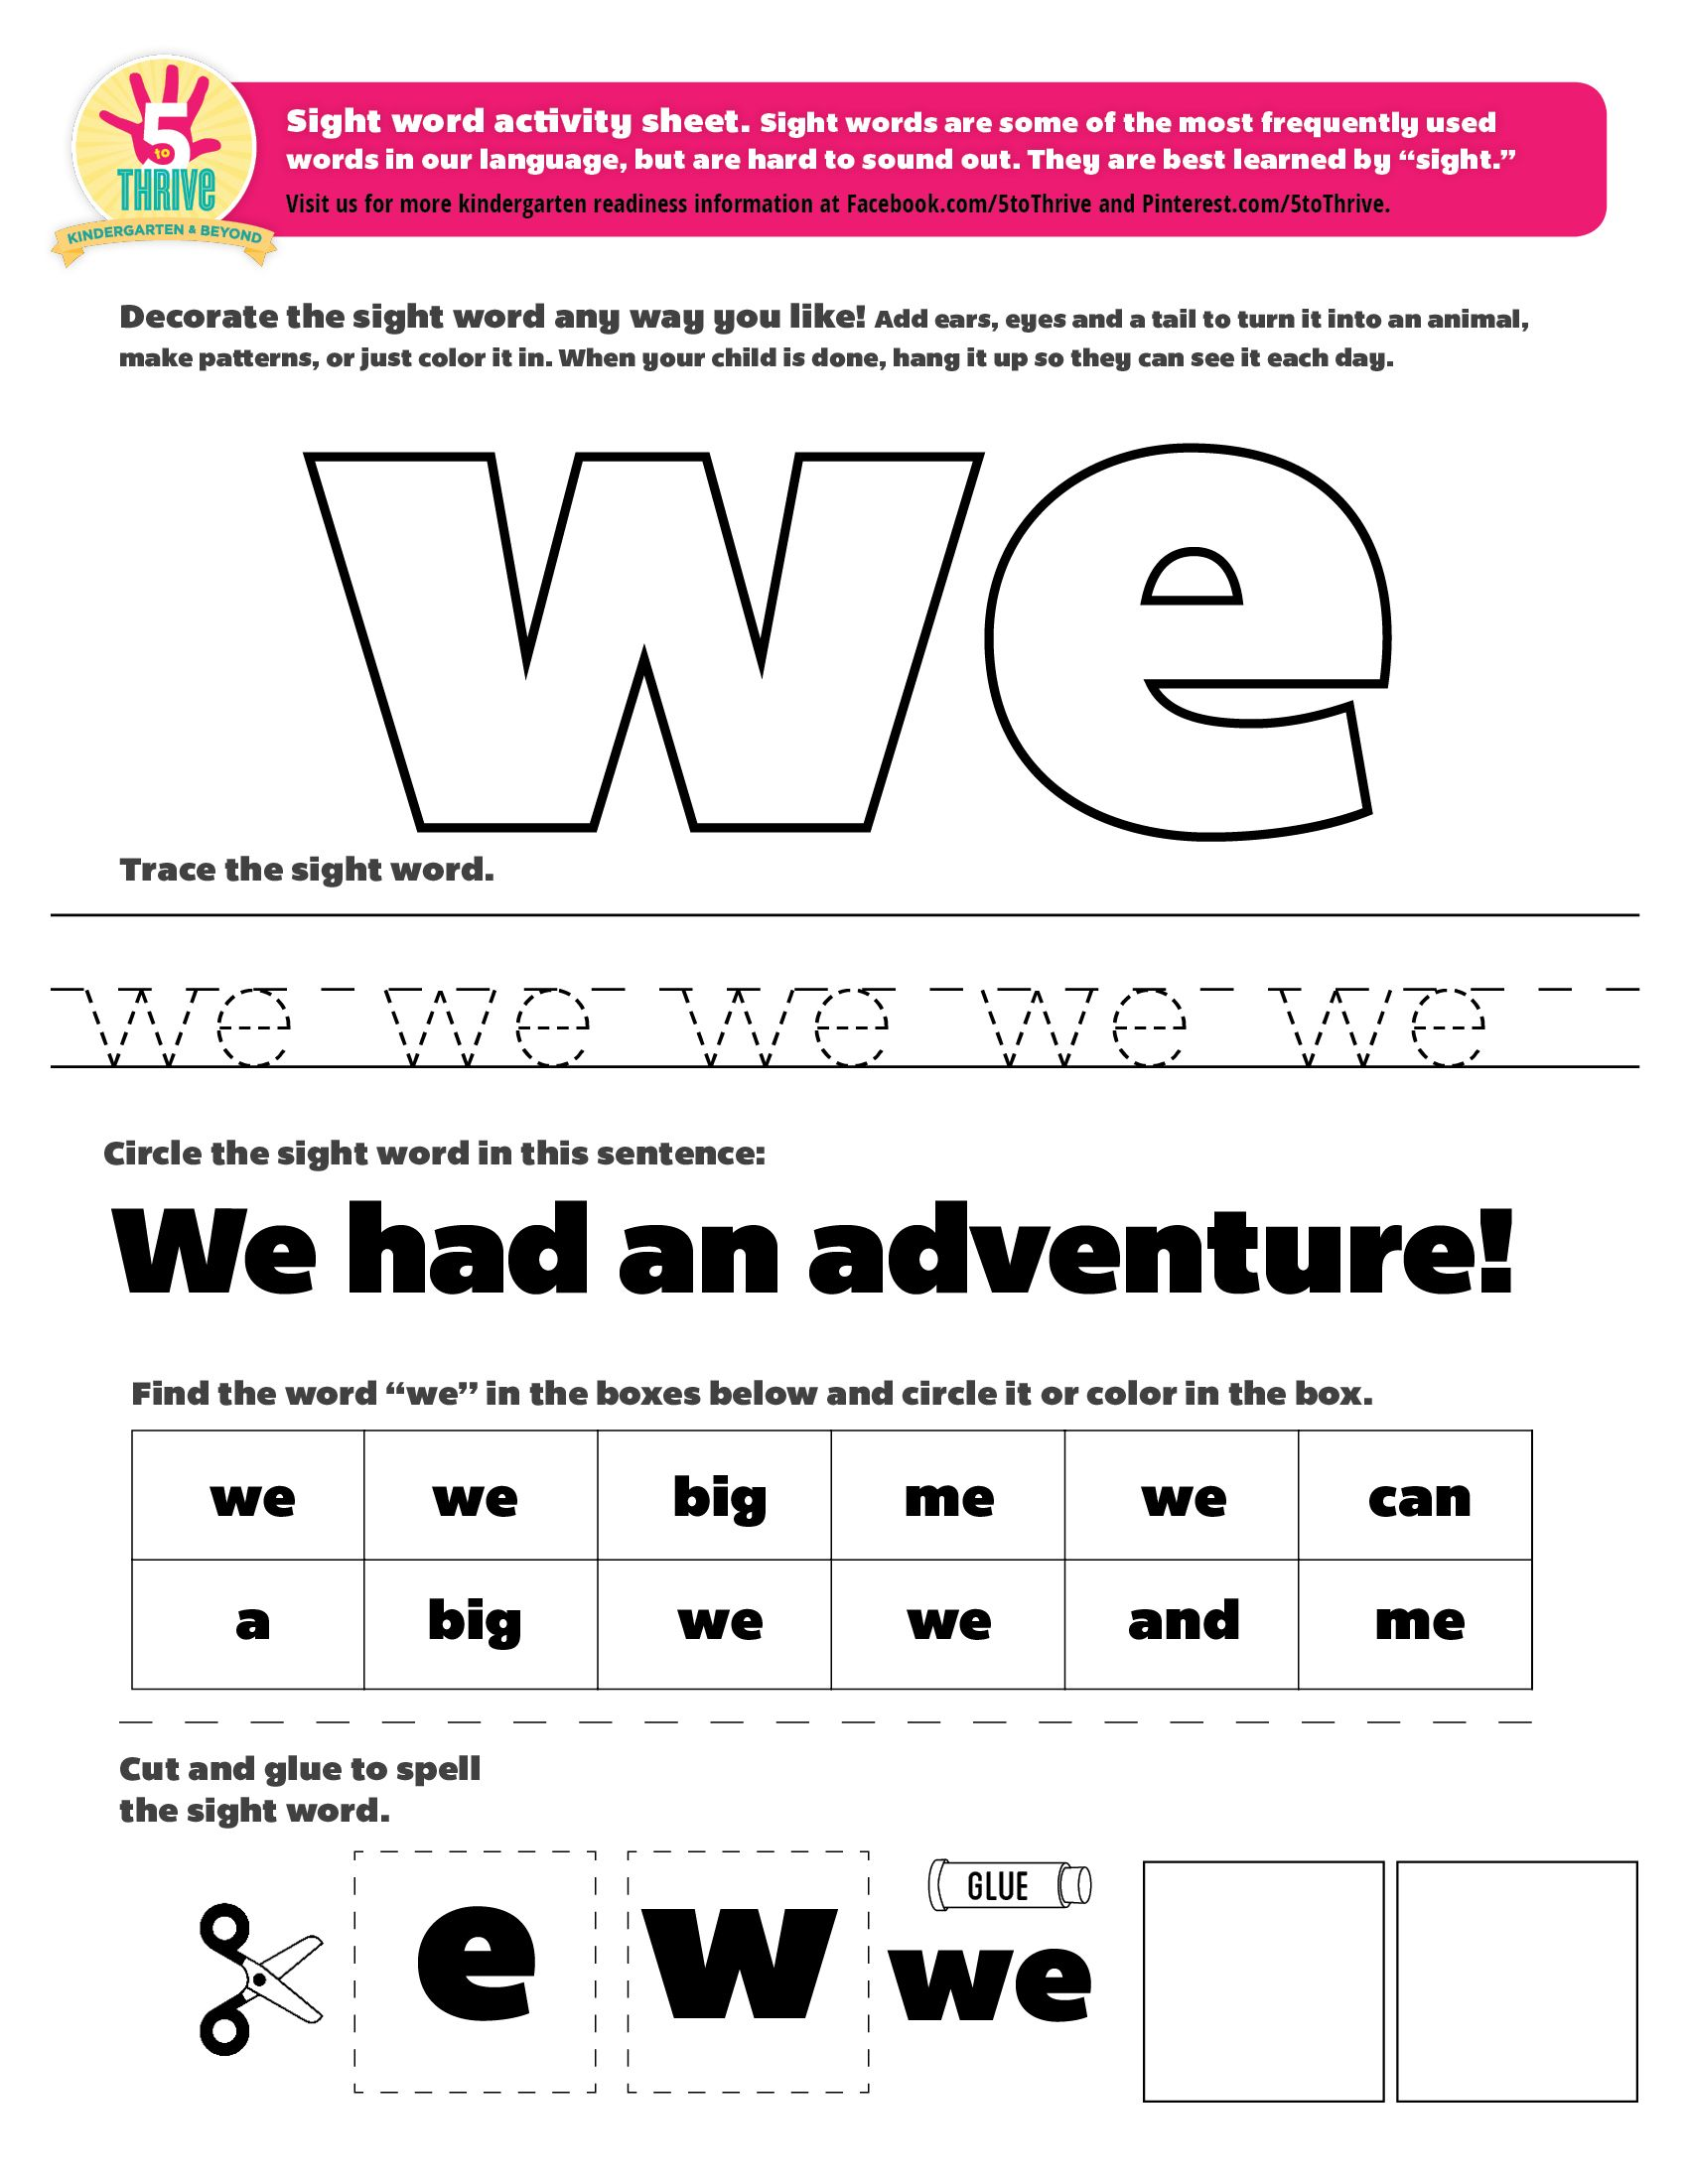 The Sight Word This Week Is We Sight Words Are Some Of The Most Frequently U Kindergarten Worksheets Sight Words Sight Word Worksheets Preschool Sight Words [ 2200 x 1700 Pixel ]